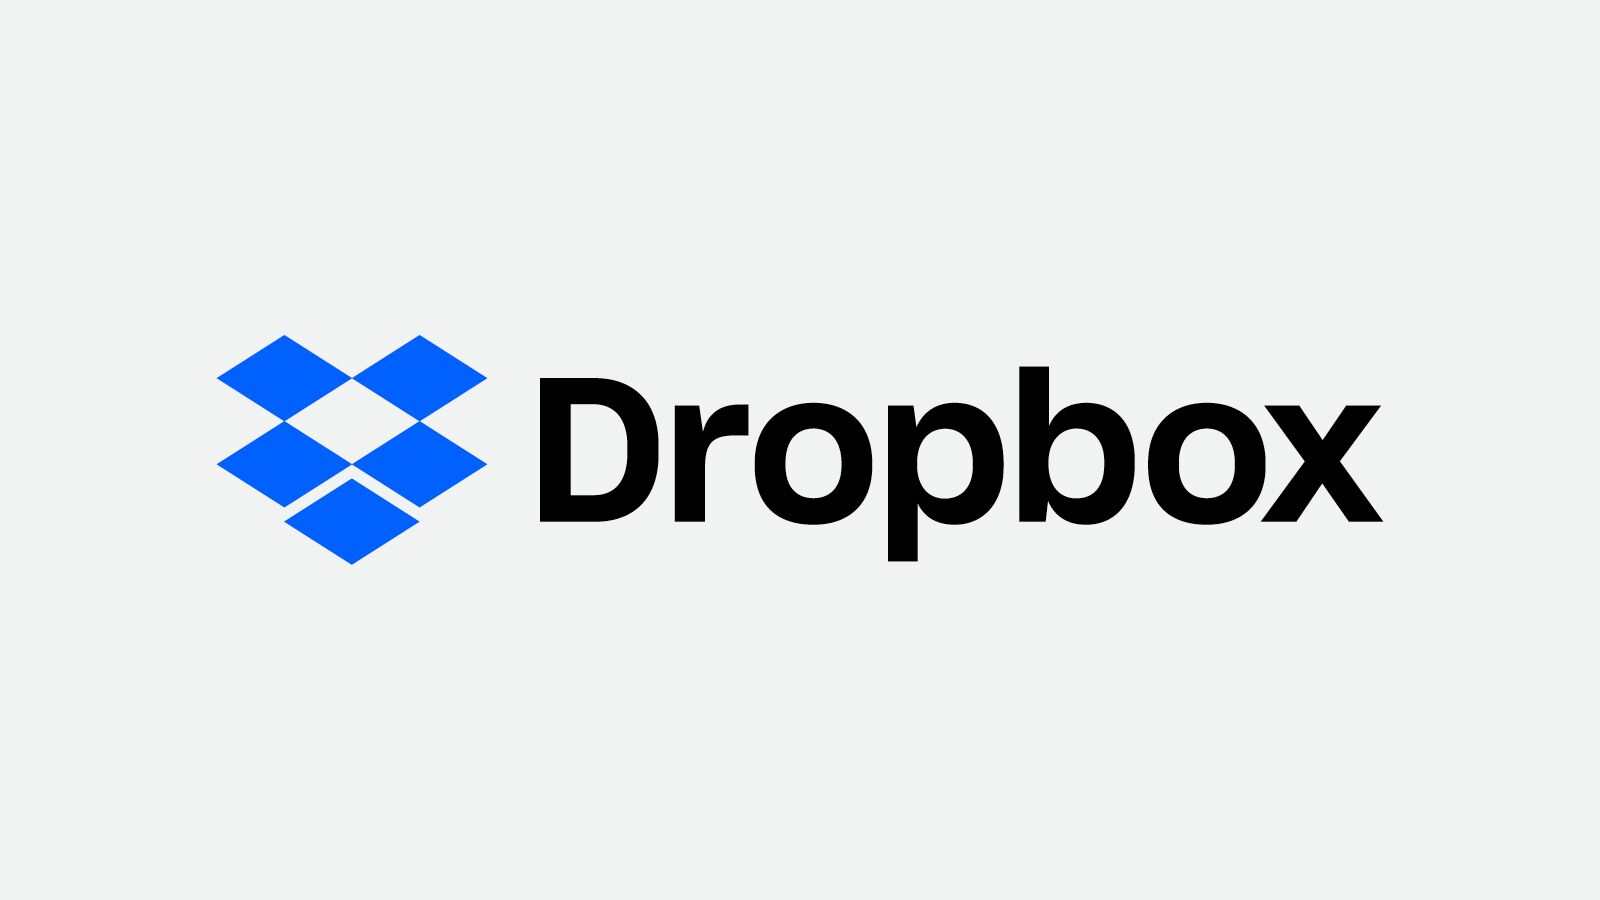 Dropbox identity (2017 redesign) - Fonts In Use